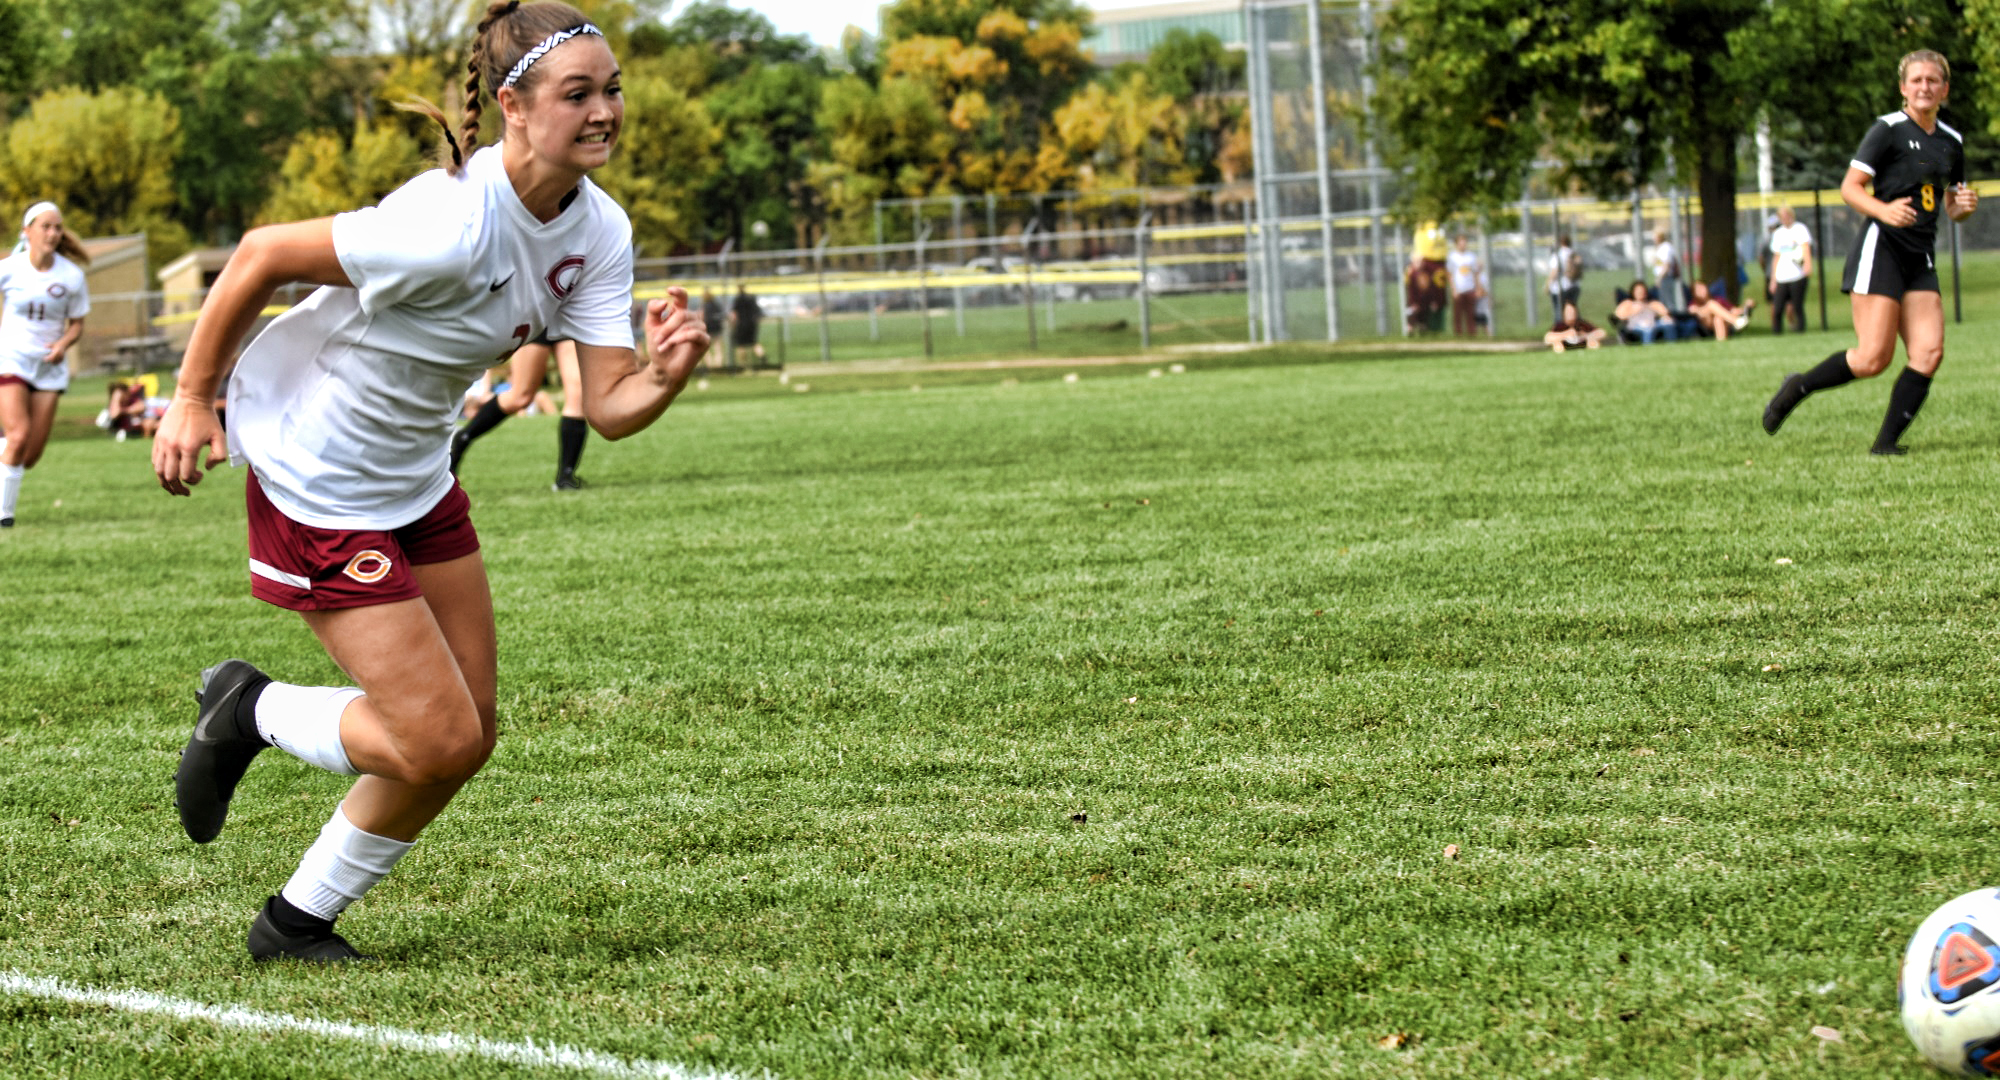 Halle Jordan scored the game-winning goal in the Cobbers' 3-0 win against Hamline.